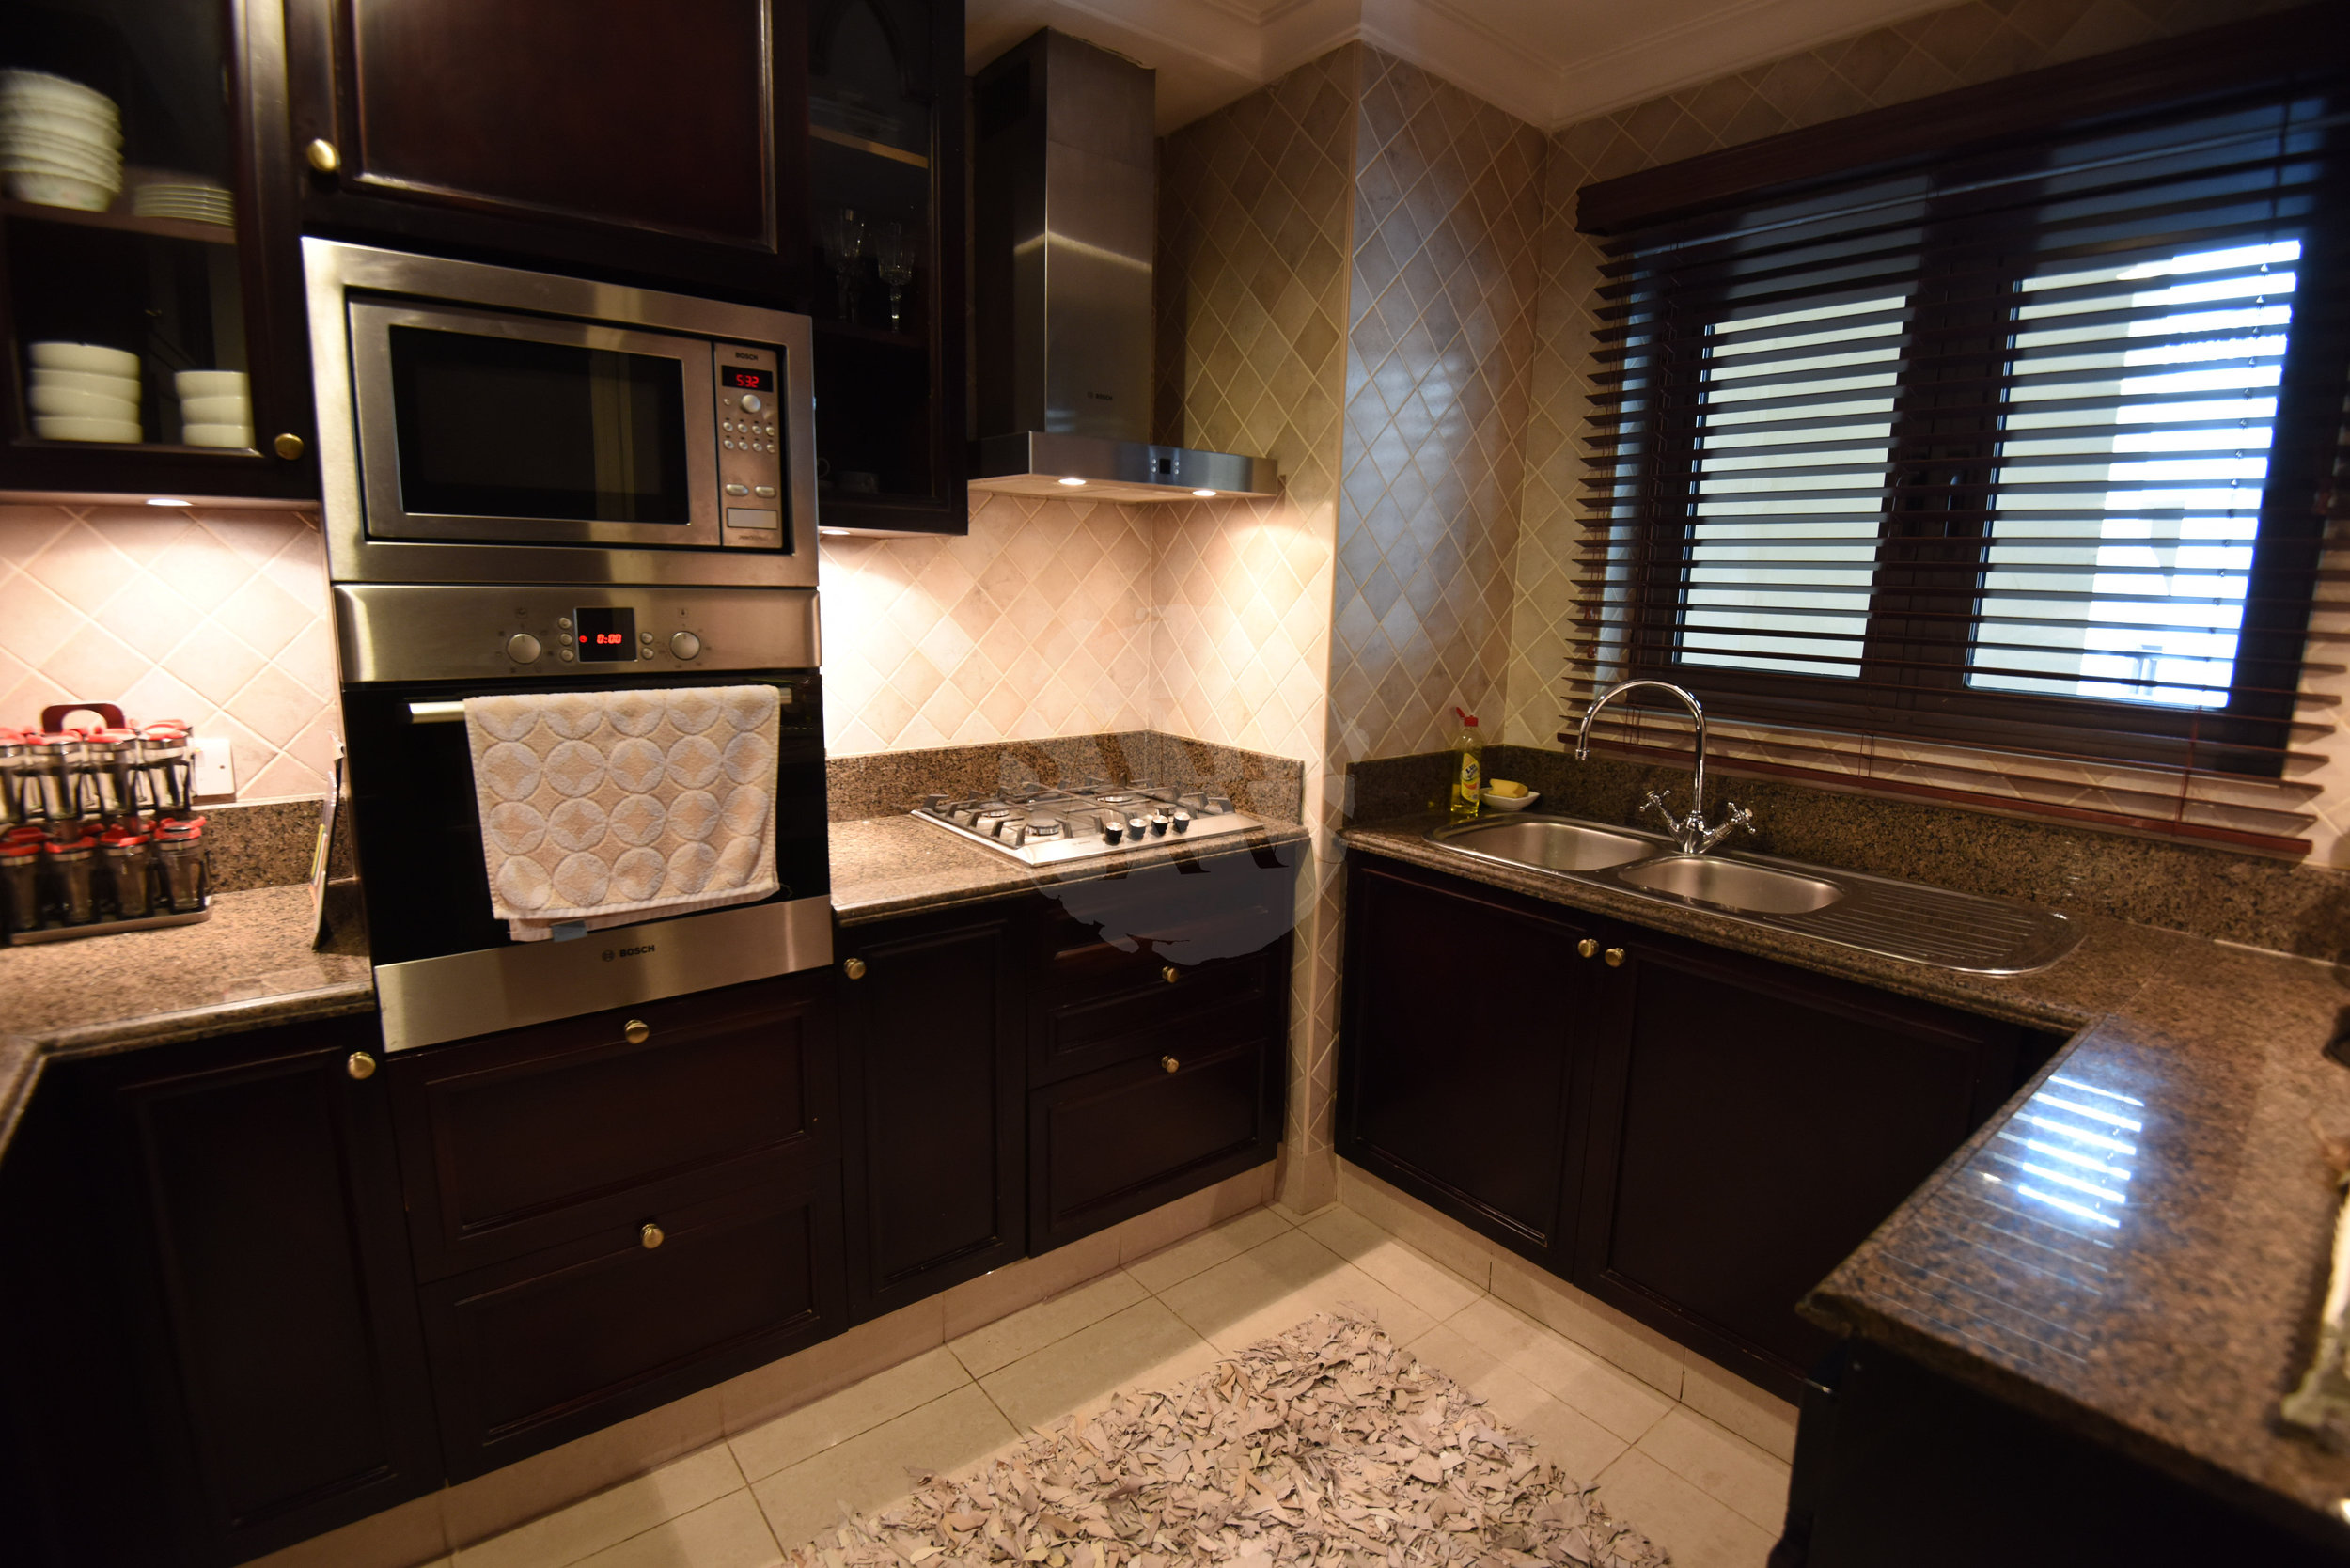 The fully furnished kitchen offers all the amenities you require during your stay